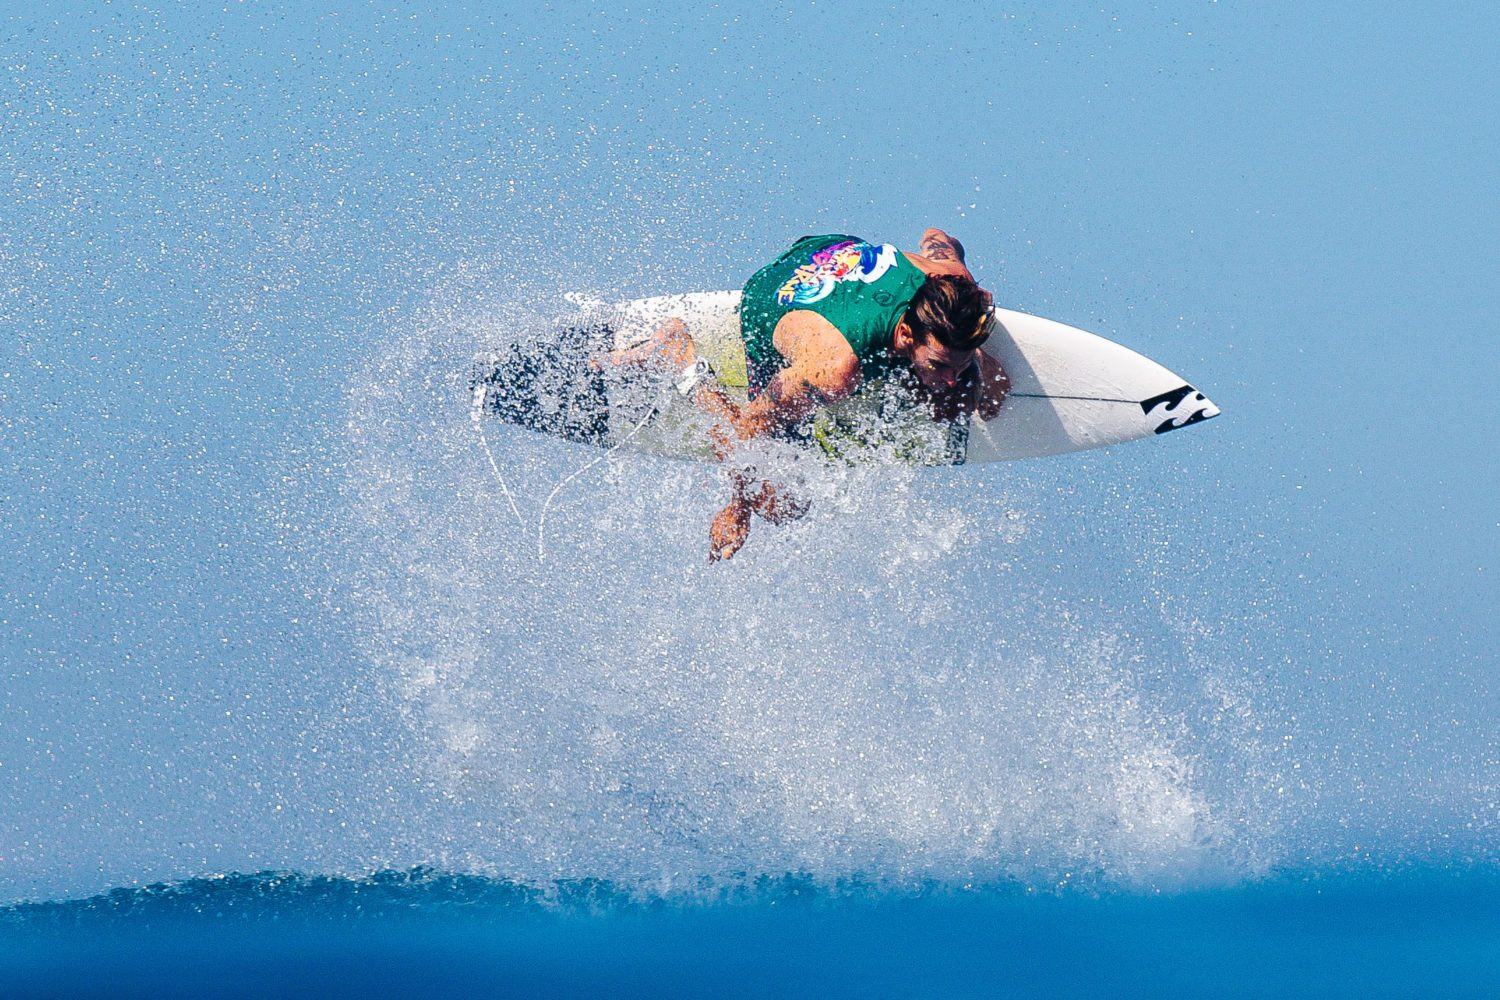 Jack Freestone takes out Red Bull Airborne Bali